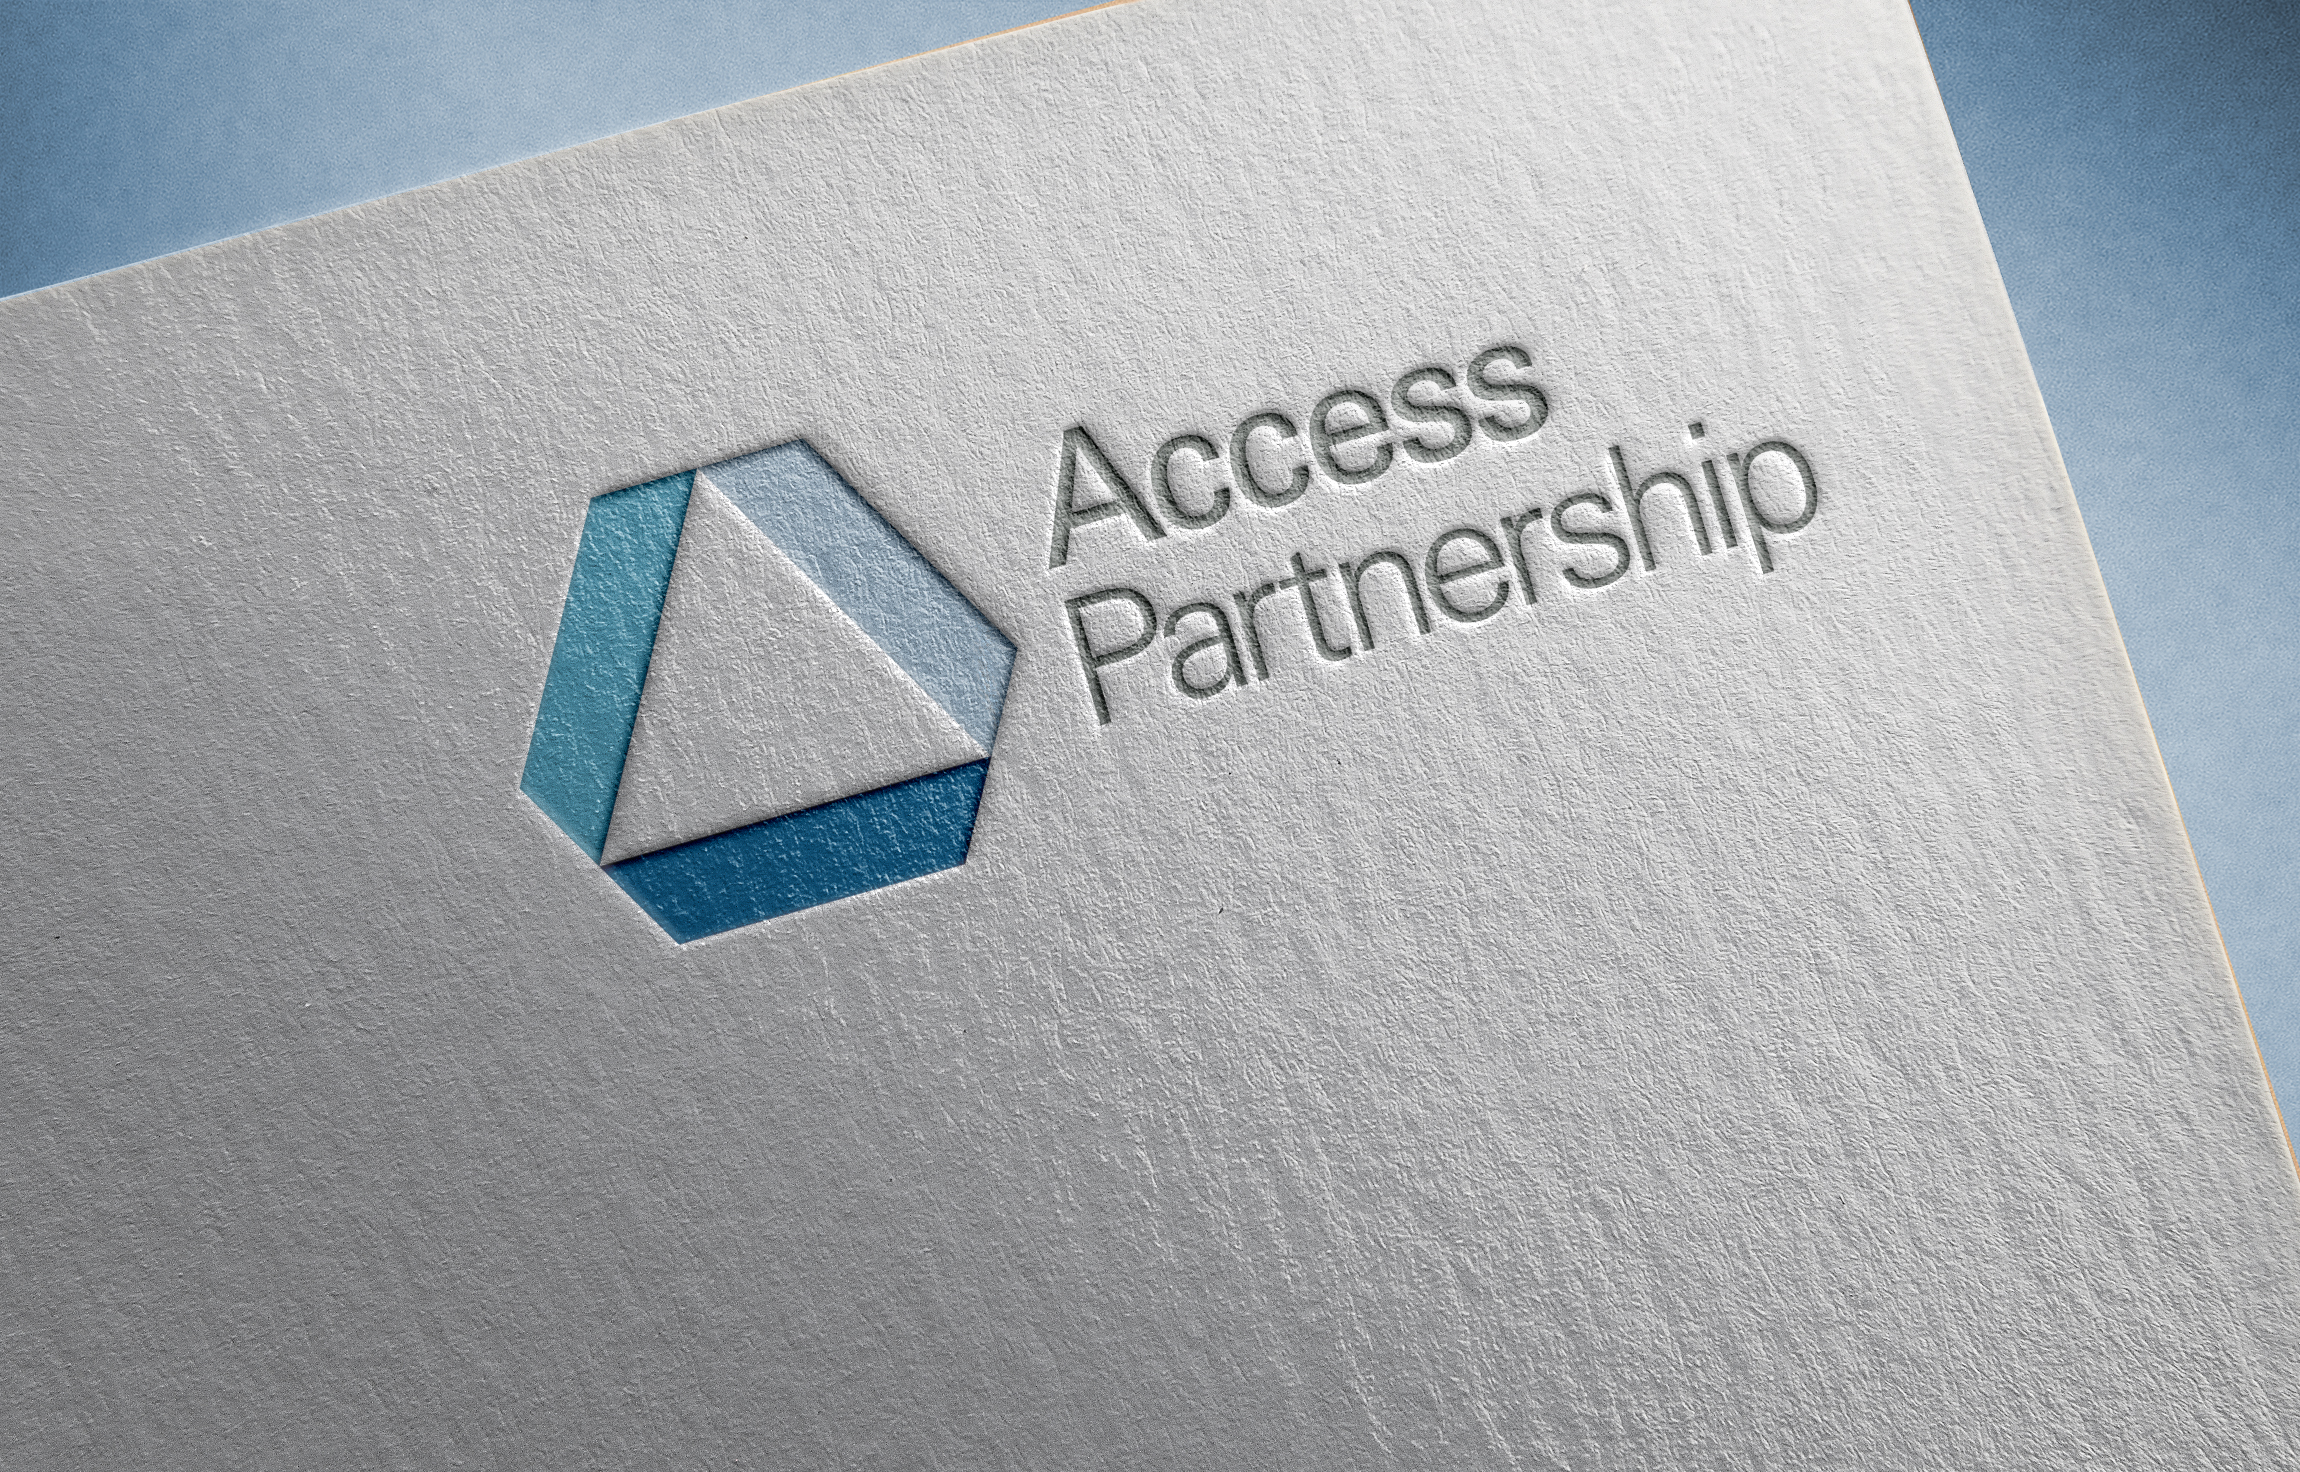 Access Partnership Announces the Launch of a New Advisory Board